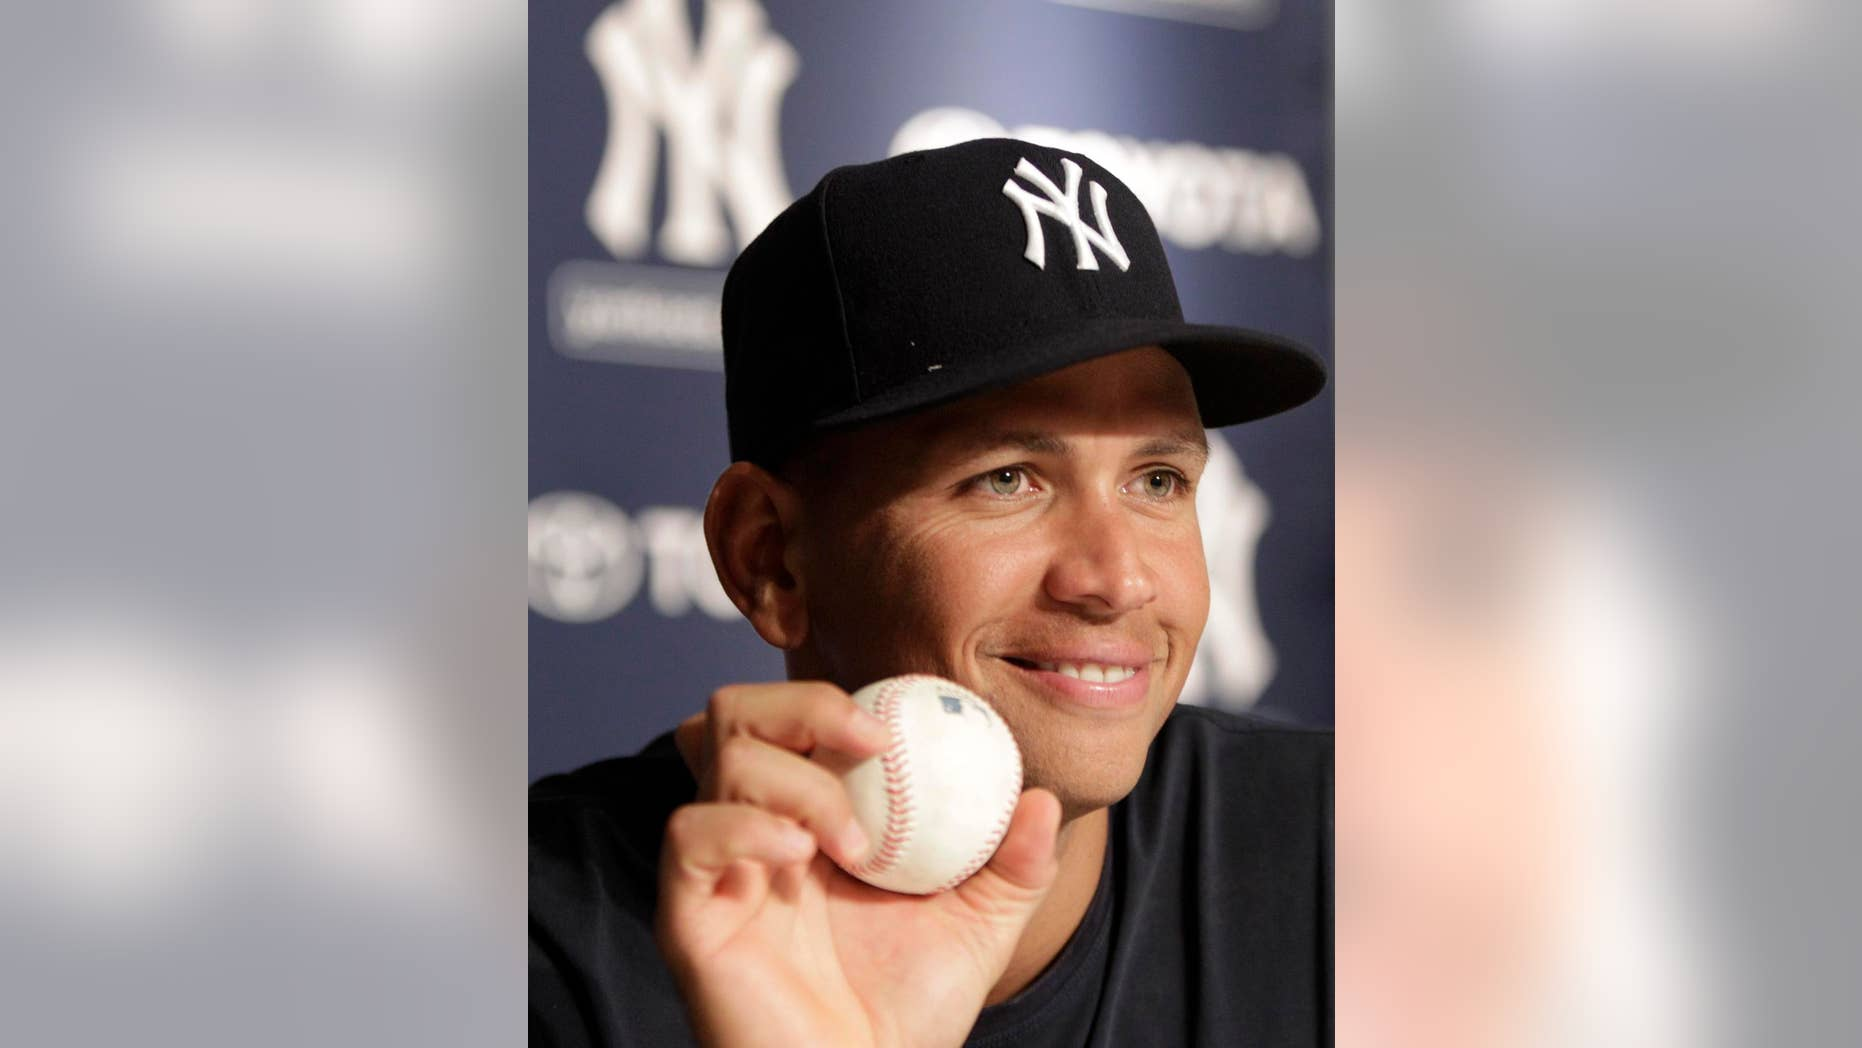 New York Yankees third baseman Alex Rodriguez holds up the baseball he hit for his his 600th career home run ball during a post-game a news conference after the Yankees 5-1 victory over the Toronto Blue Jays in a baseball game at Yankee Stadium on Wednesday, Aug. 4, 2010 in New York. (AP Photo/Kathy Willens)